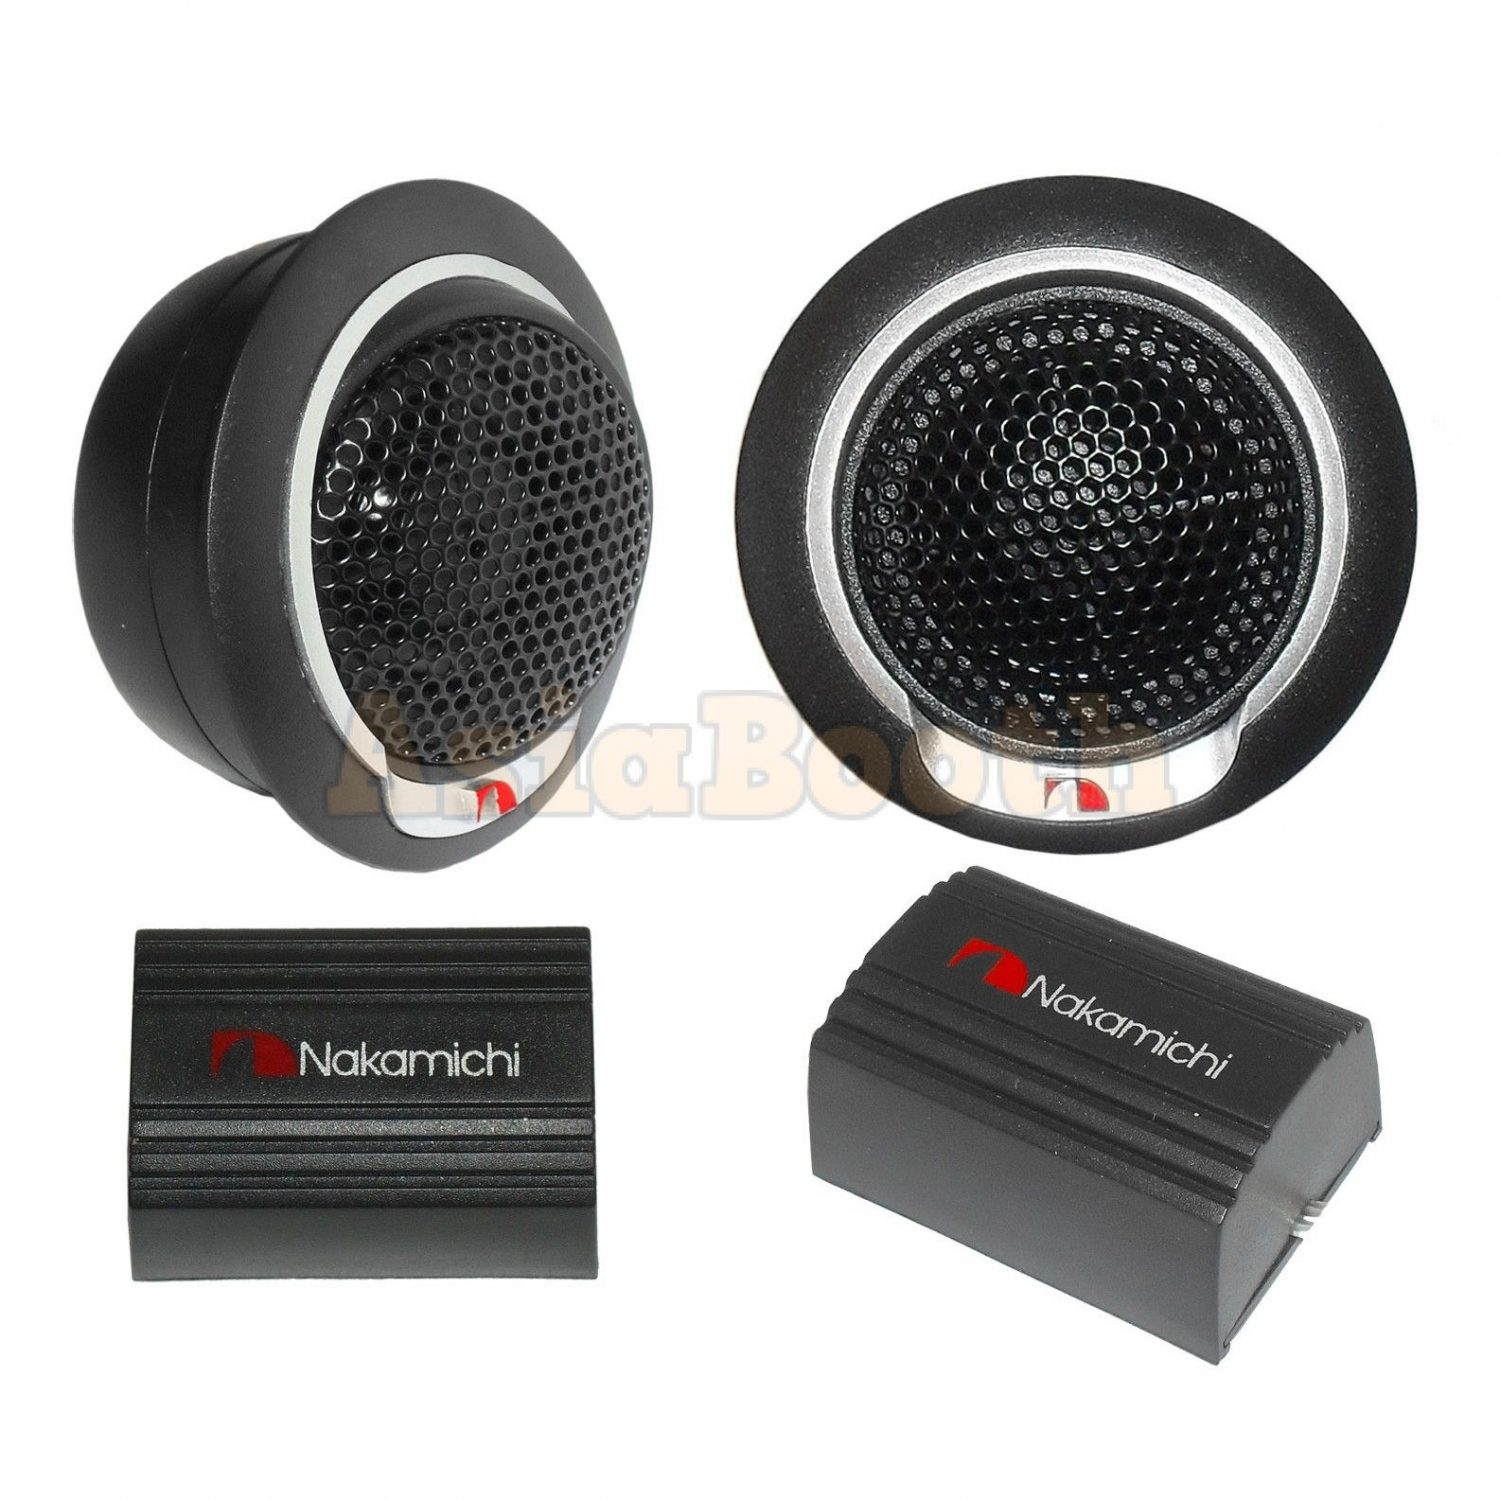 Nakamichi SP-T13 Car Speaker Cone Tweeter System